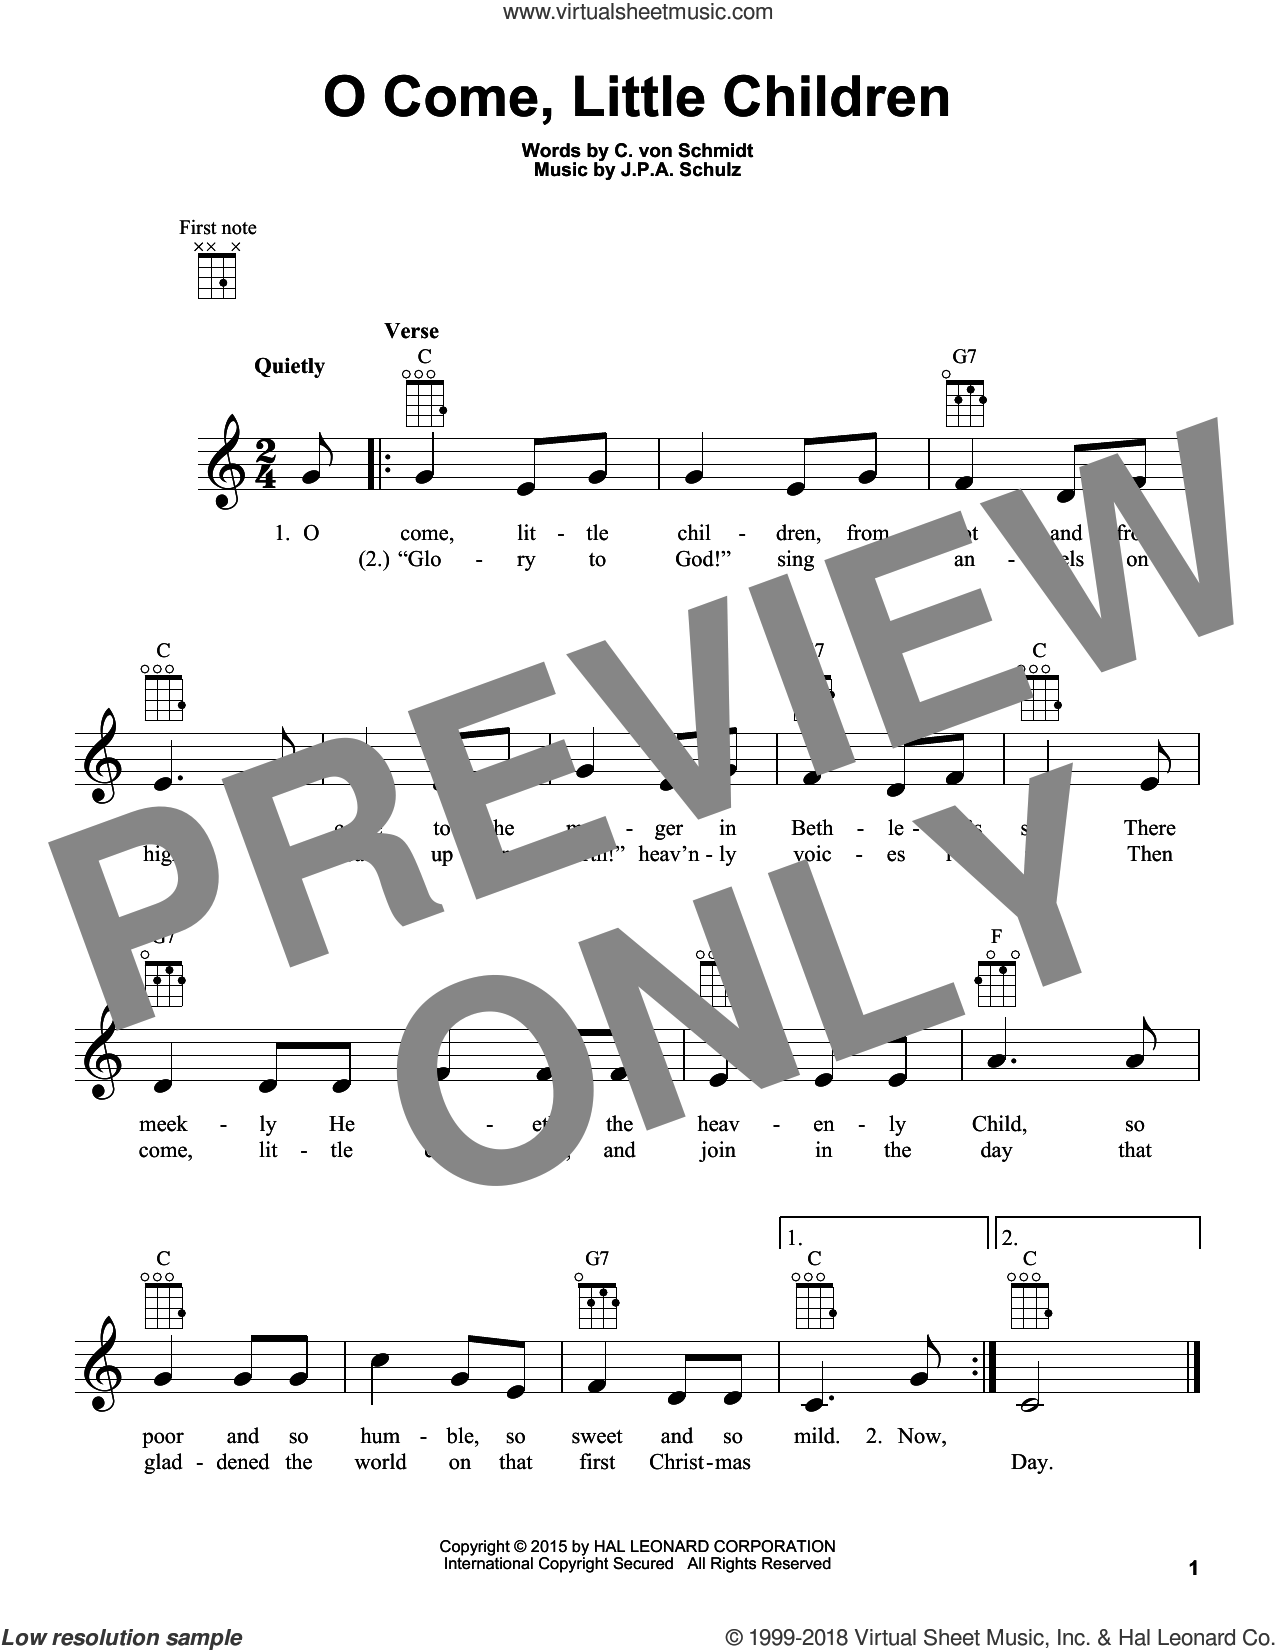 O Come, Little Children sheet music for ukulele by Cristoph Von Schmid and J.A.P. Schulz, intermediate. Score Image Preview.